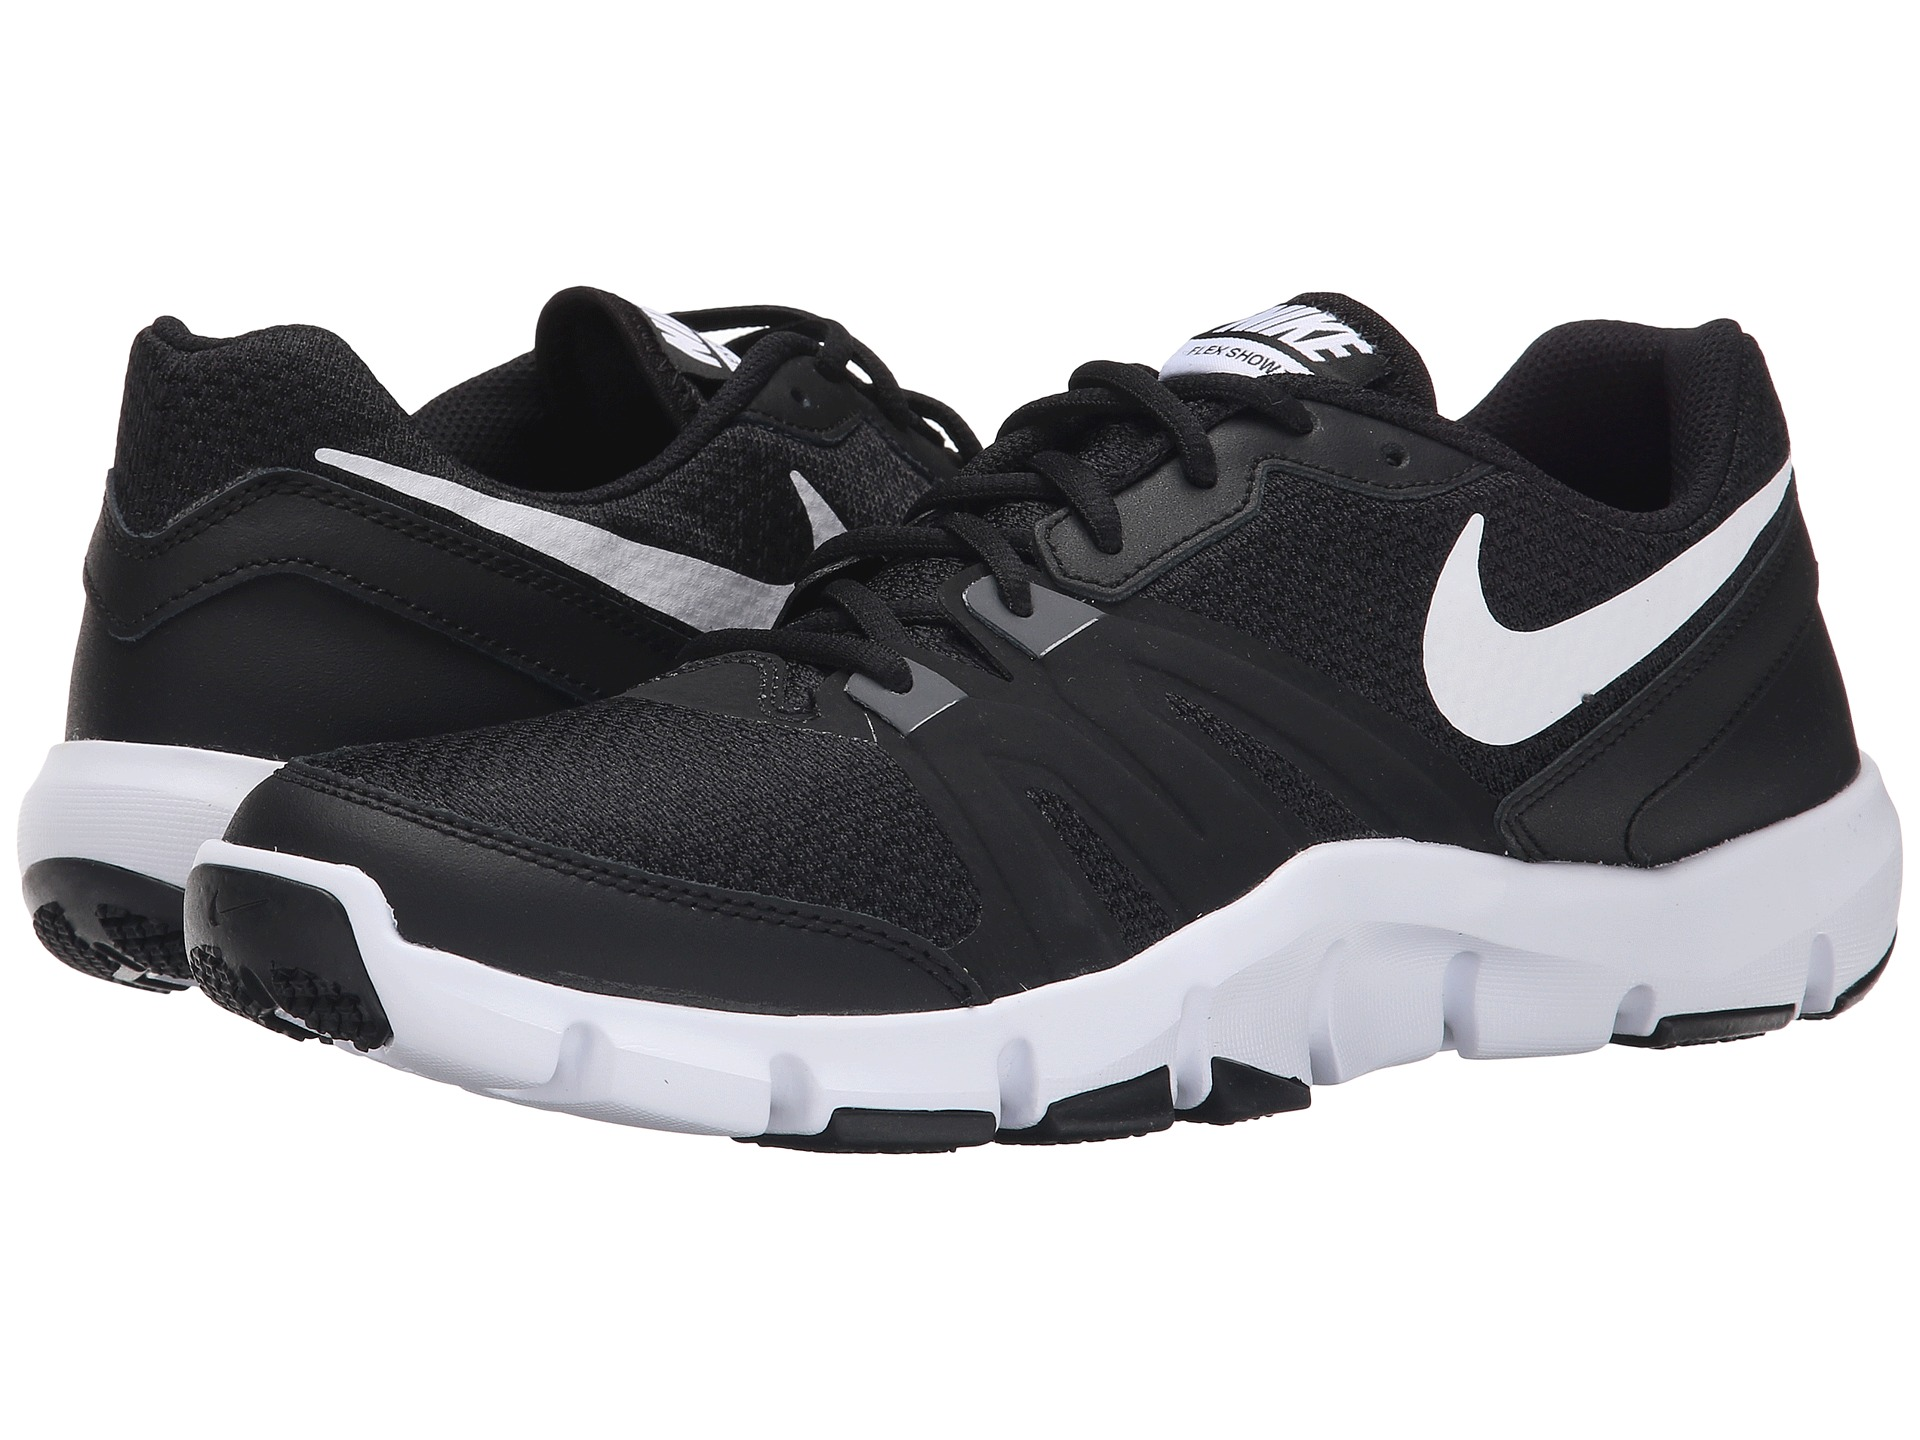 Nike Mens Shoes Size Chart Images